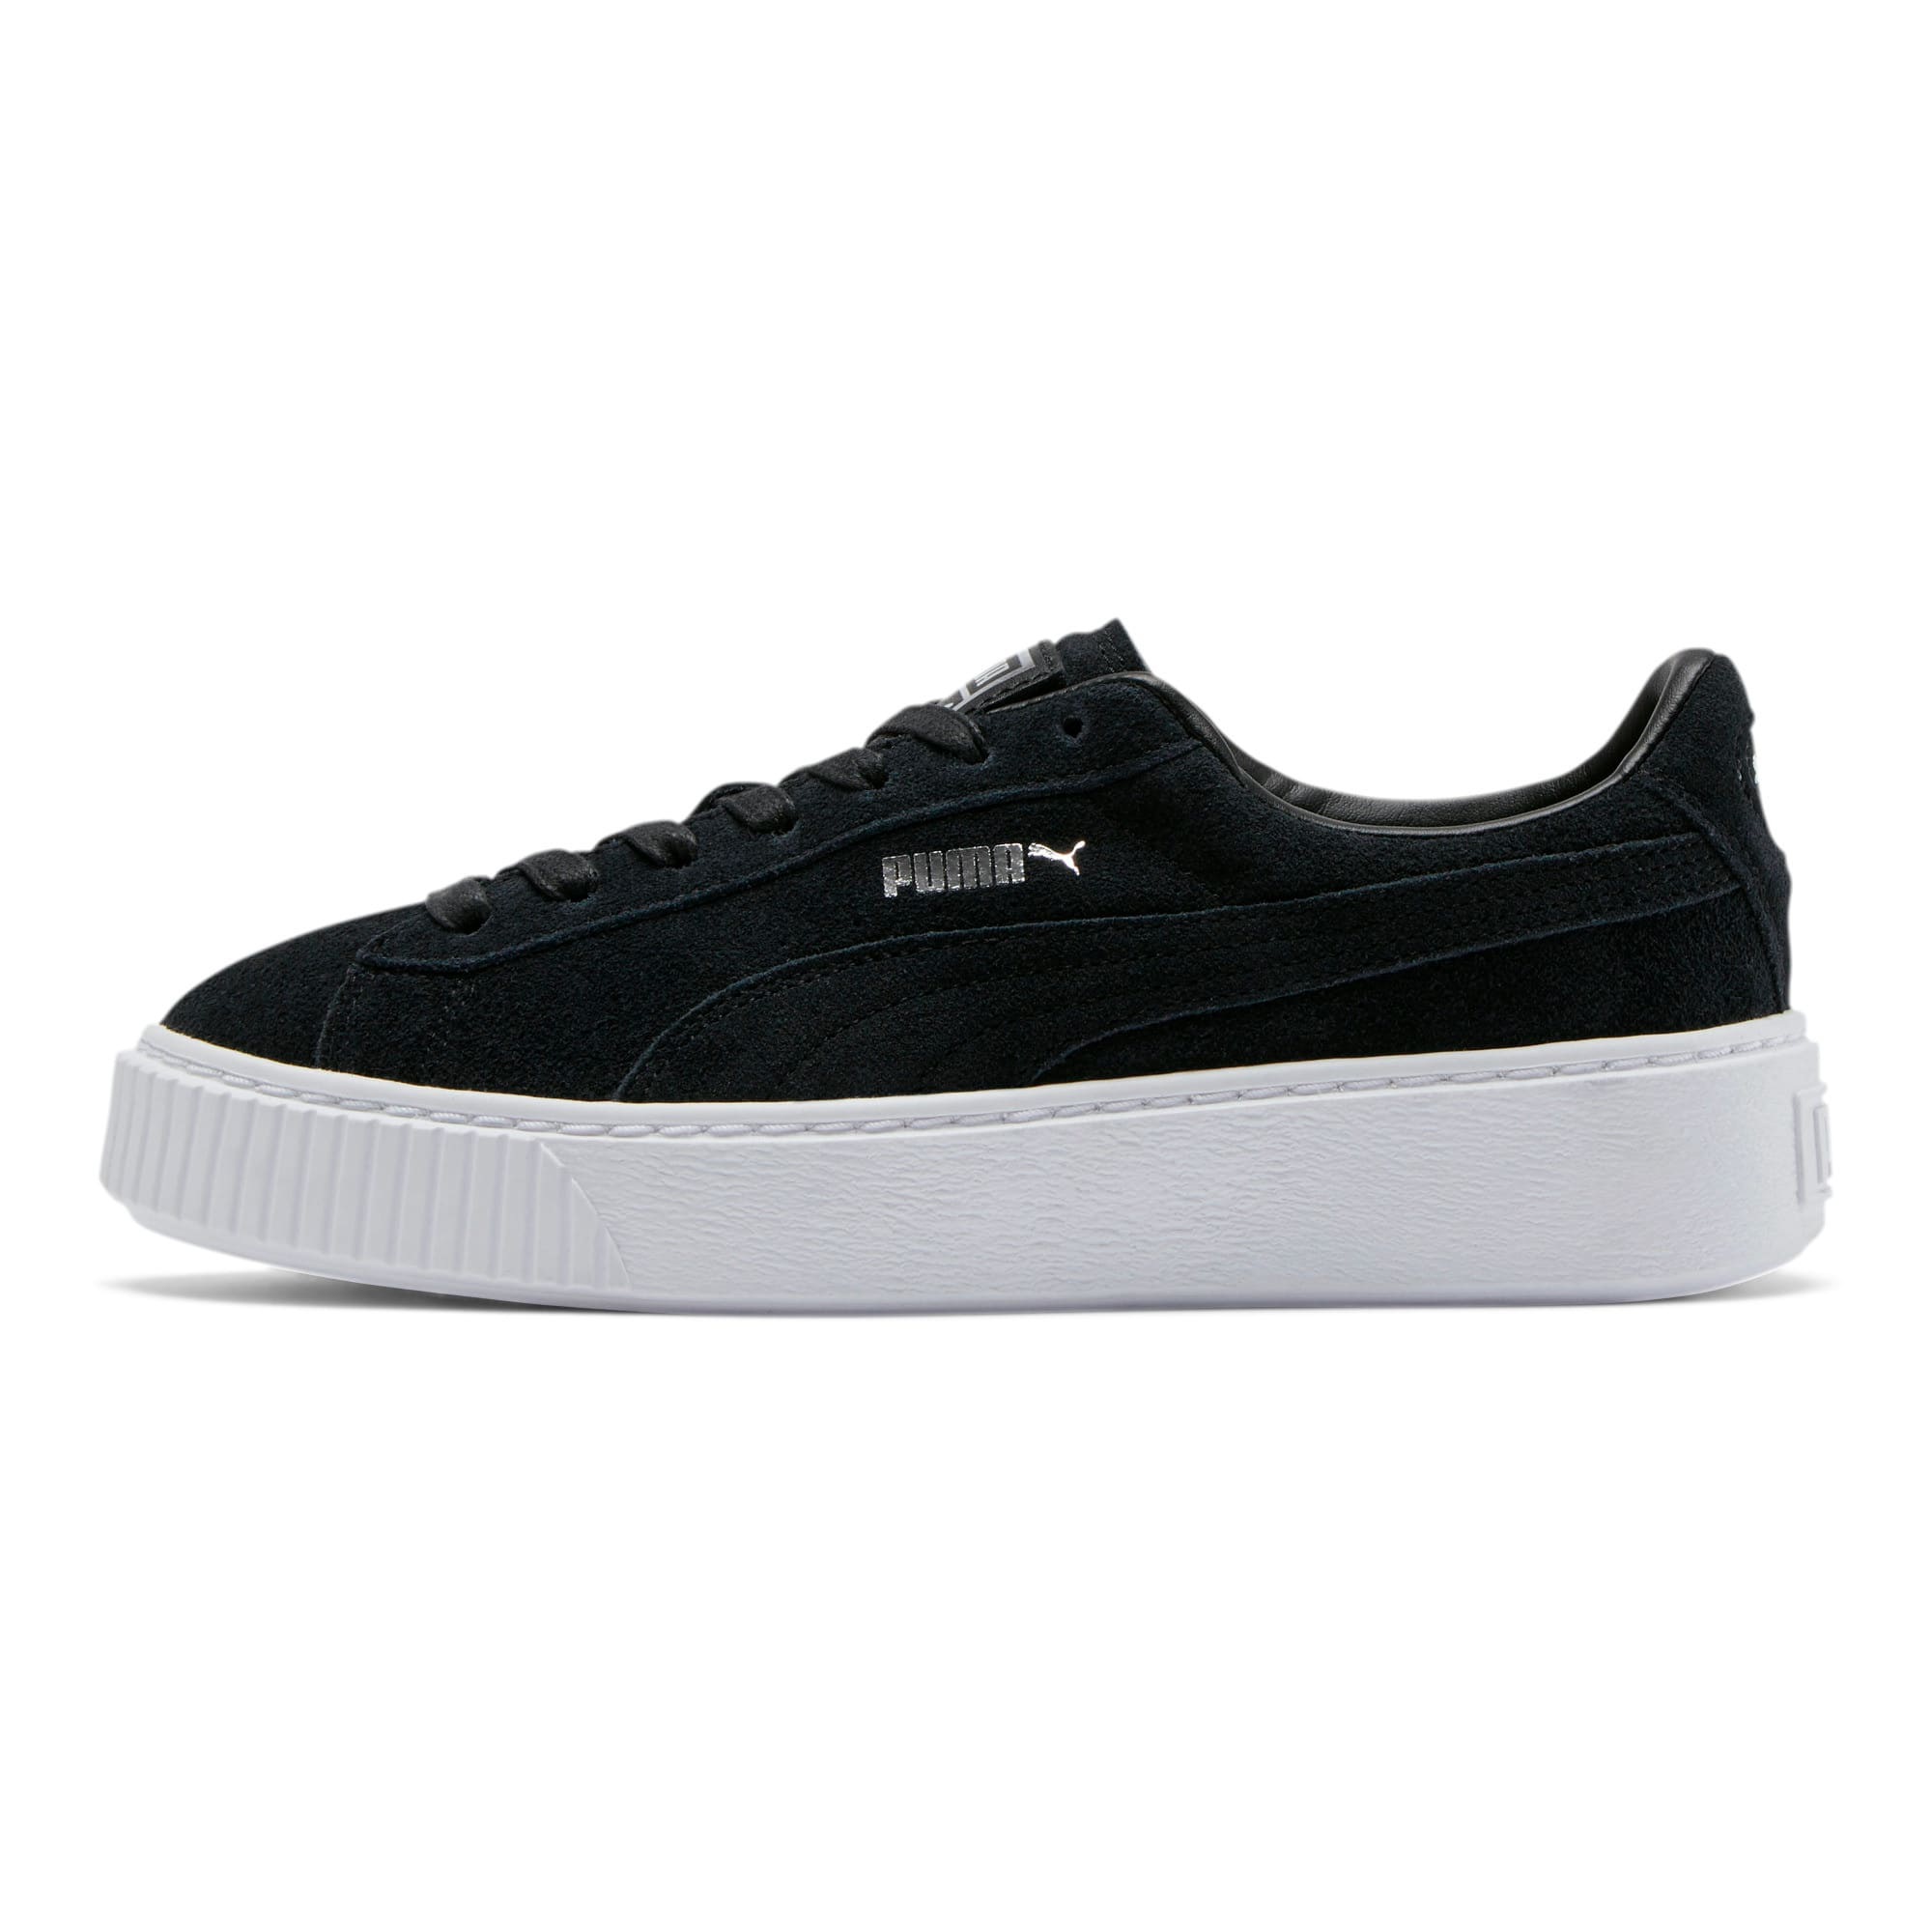 Thumbnail 1 of Suede Platform Women's Sneakers, Puma Black-Black-Puma White, medium